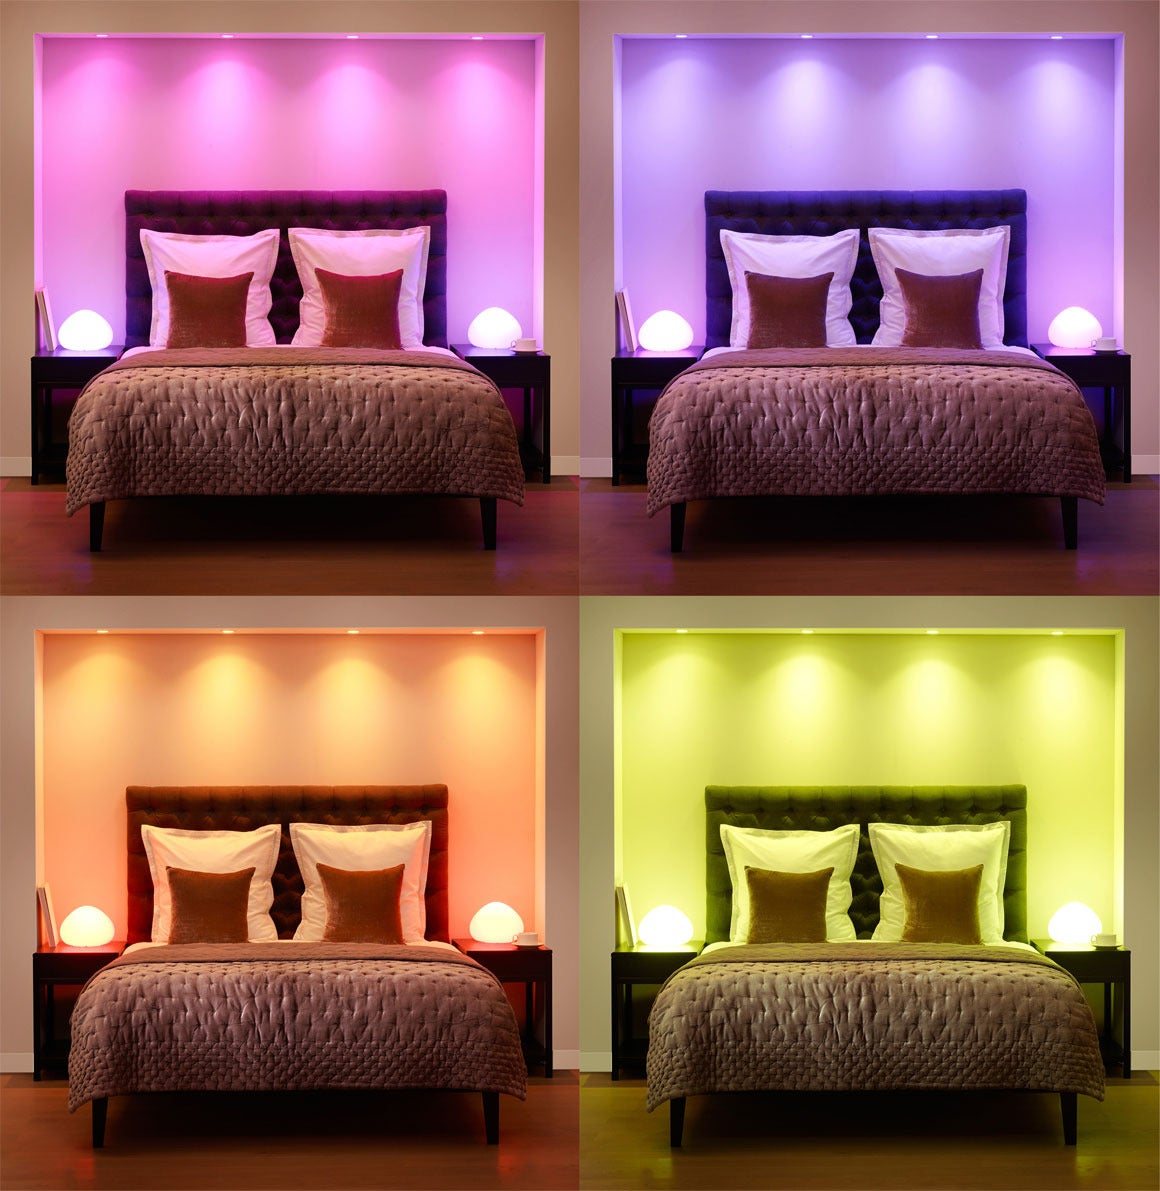 how to optimize your home lighting design based on color temperature techhive